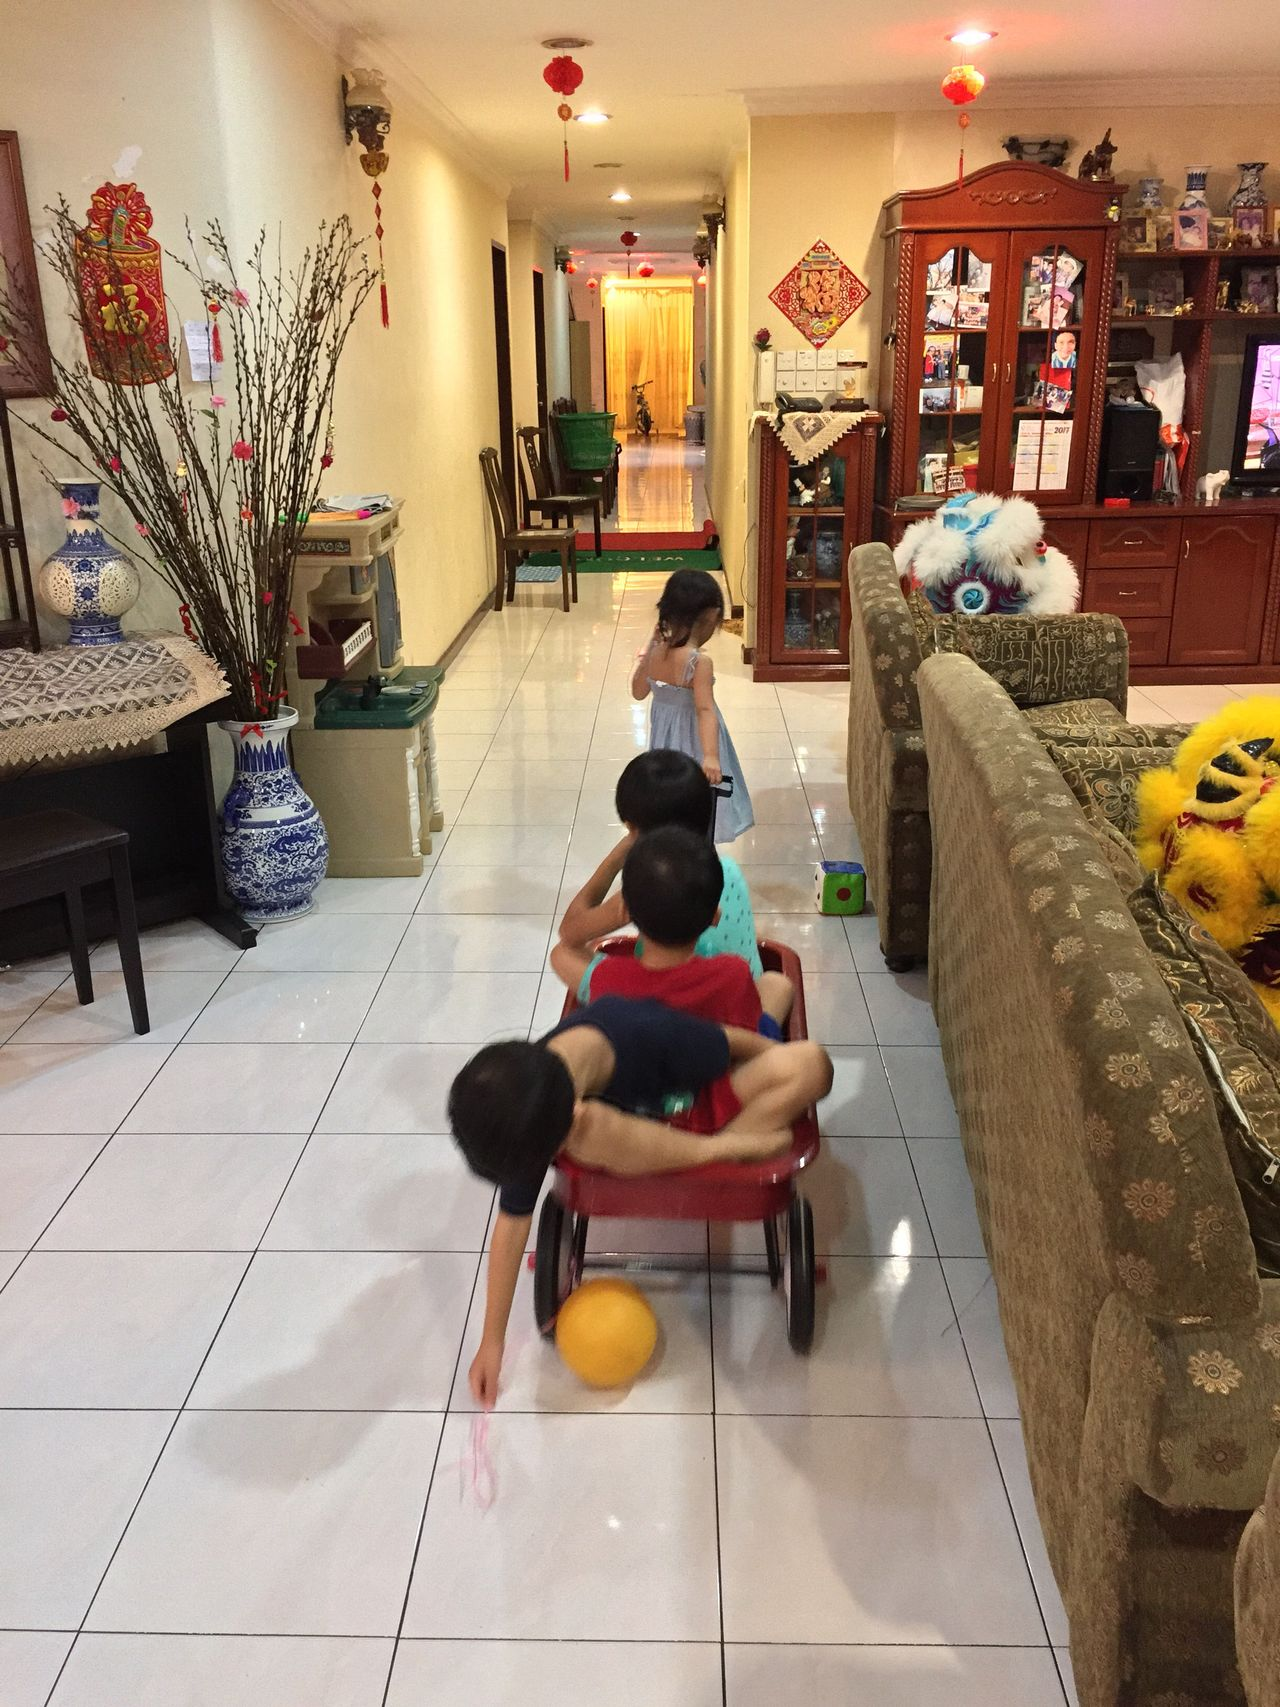 Child's play 😄 Indoors  Full Length People Kids Being Kids Cousins  At Home Gathering Family Time The Purist (no Edit, No Filter) My Photography Chinese New Year Iphonephotography Real People My Photo My Style